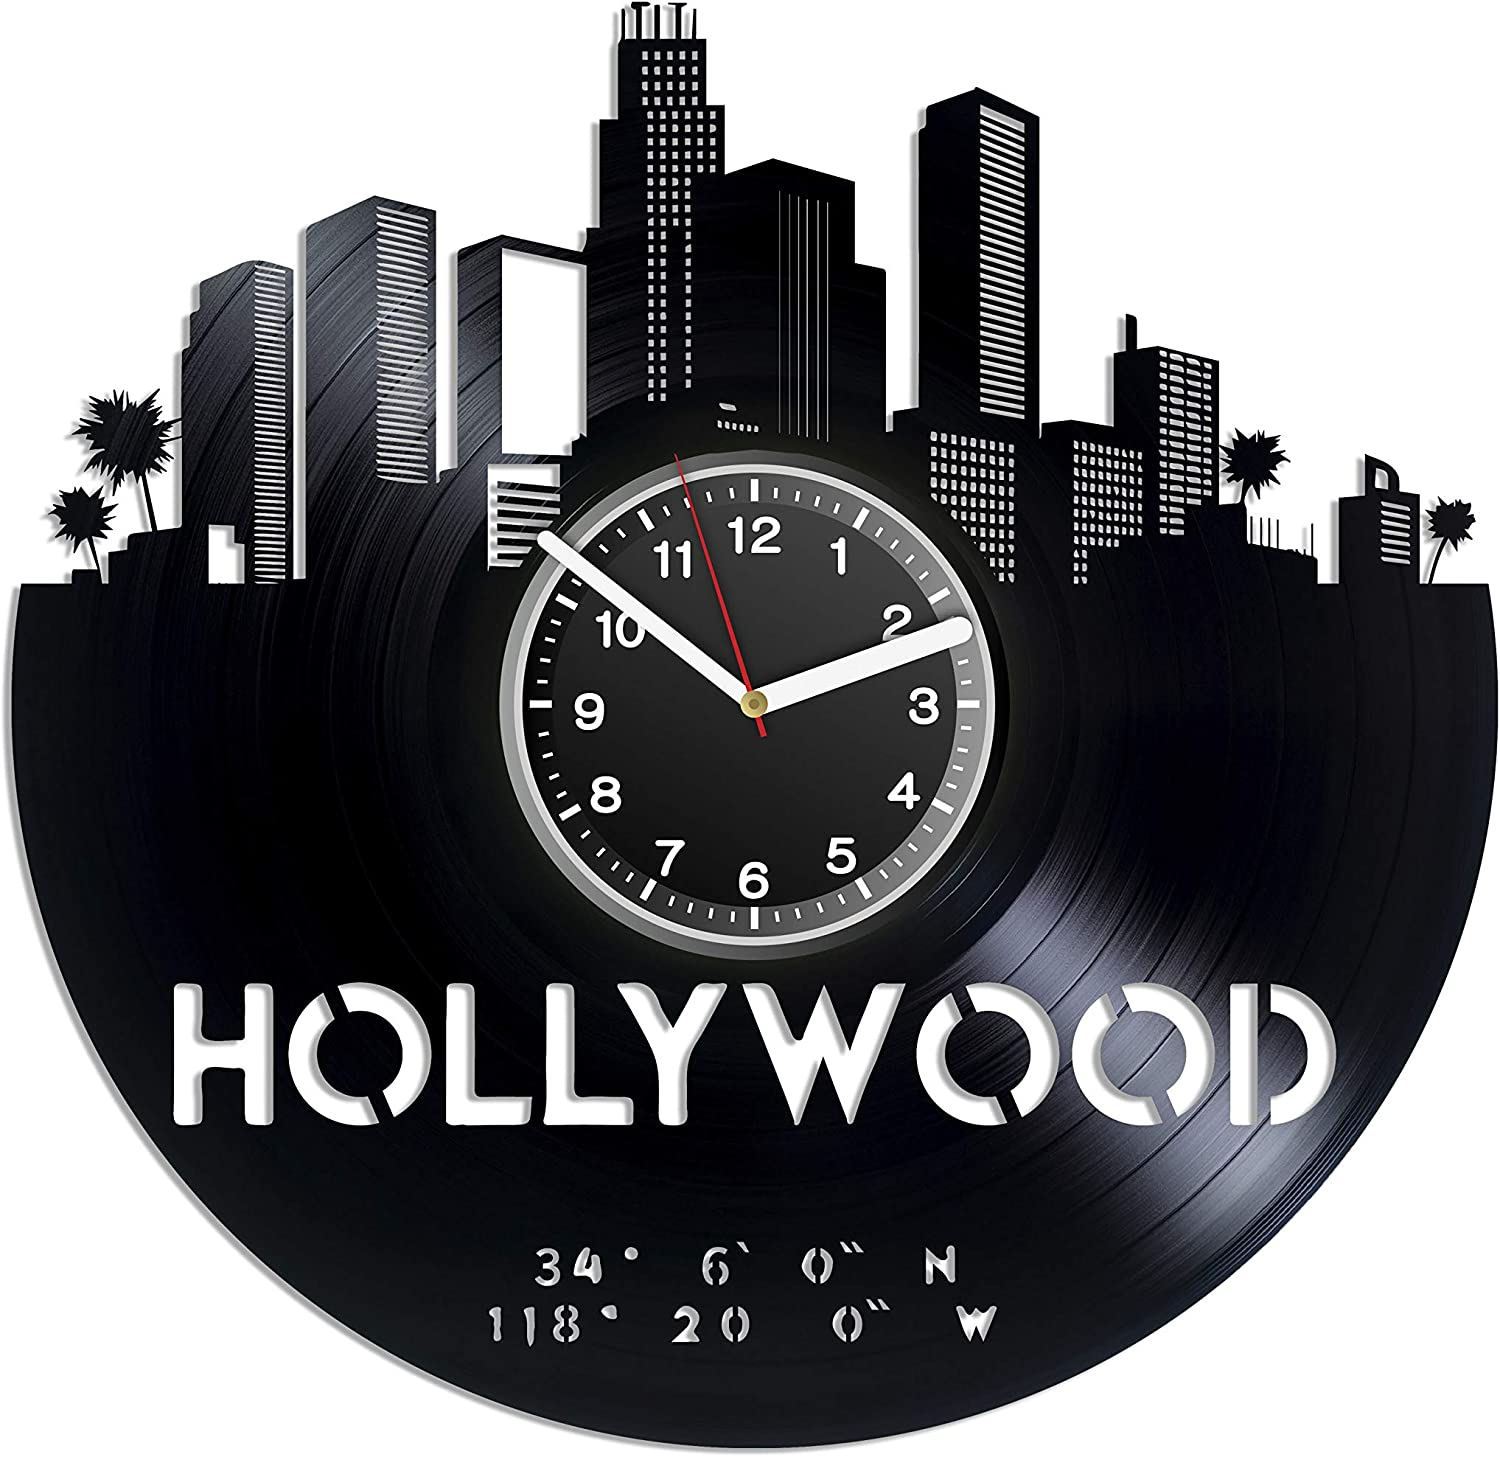 Kovides Hollywood Wall Clock Los Angeles California Vintage Record Clock Hollywood Art B-Day Gift Idea for Woman Gift Idea for Men American Film Industry Minimalist Decor for House